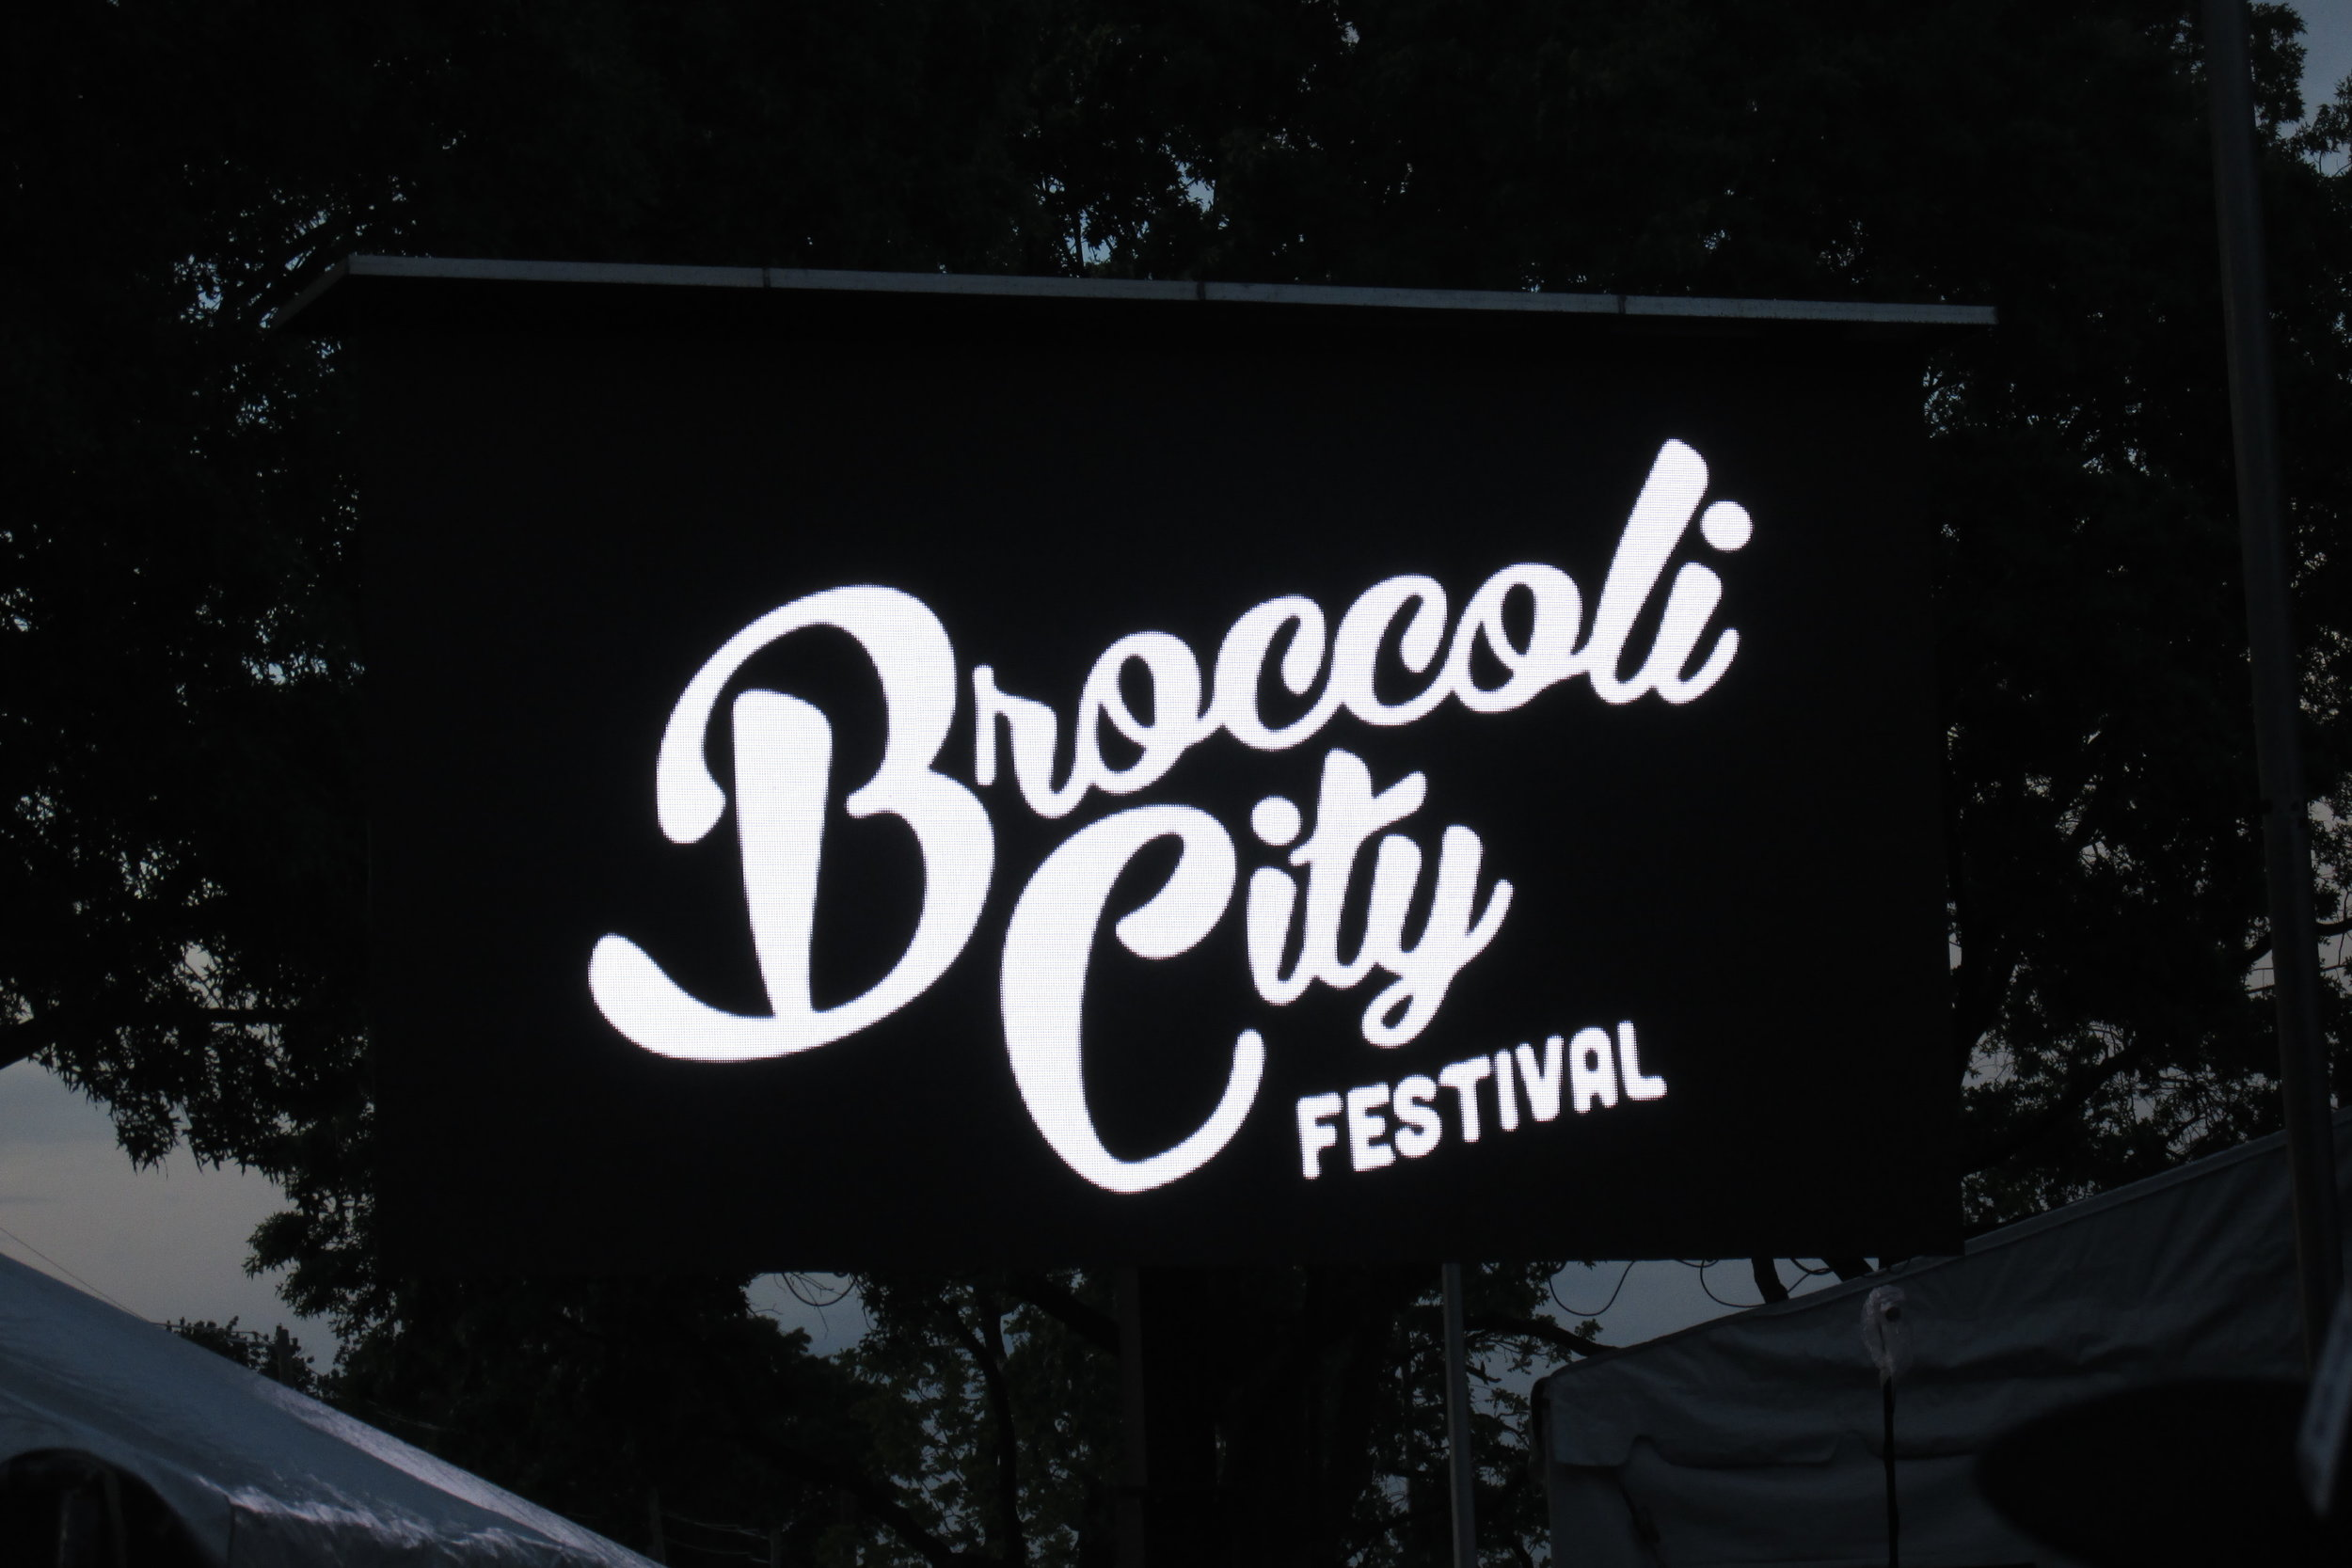 Broccoli City Fest- Washington, DC